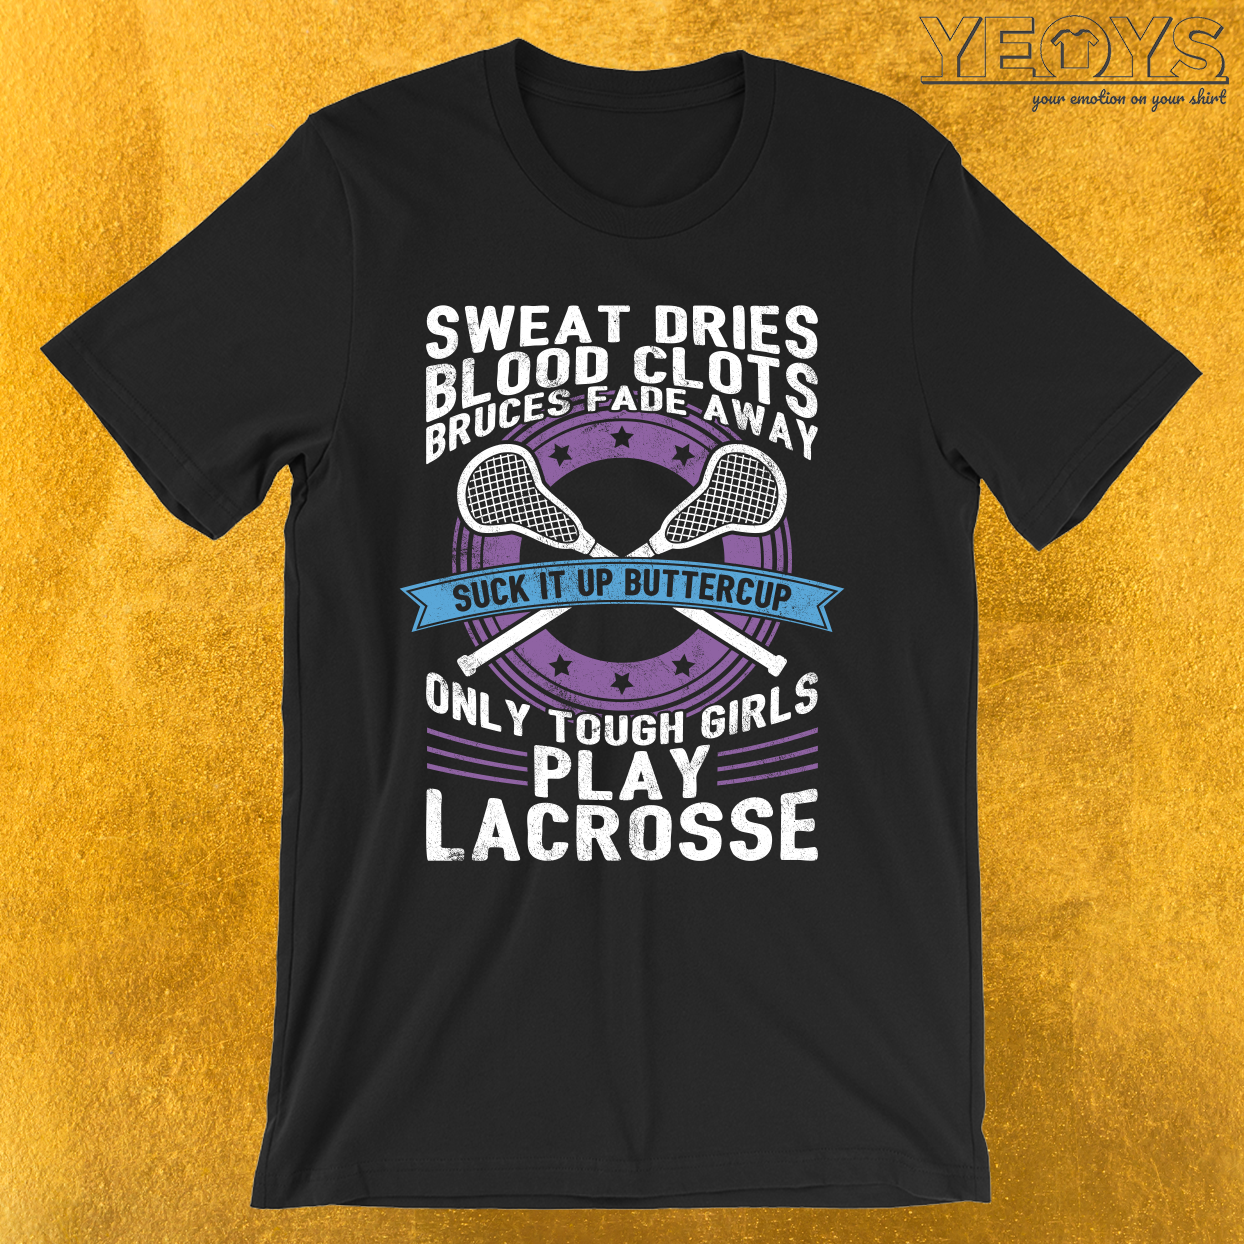 Buttercup Tough Girls Lacrosse T-Shirt